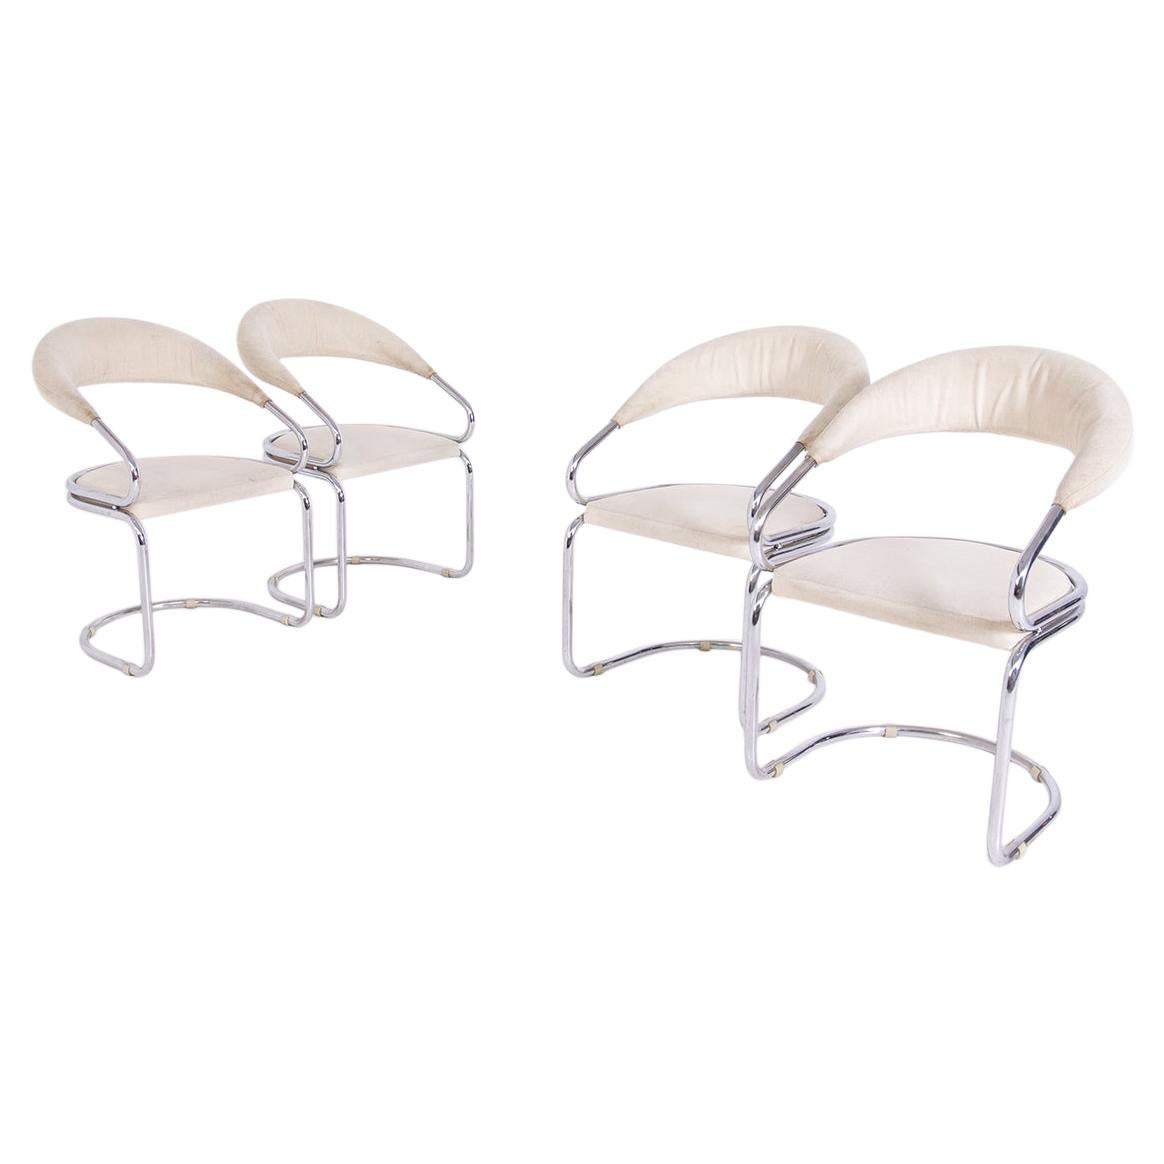 Giotto Stoppino Set of Four Italian Chairs in Steel and Beige Cotton